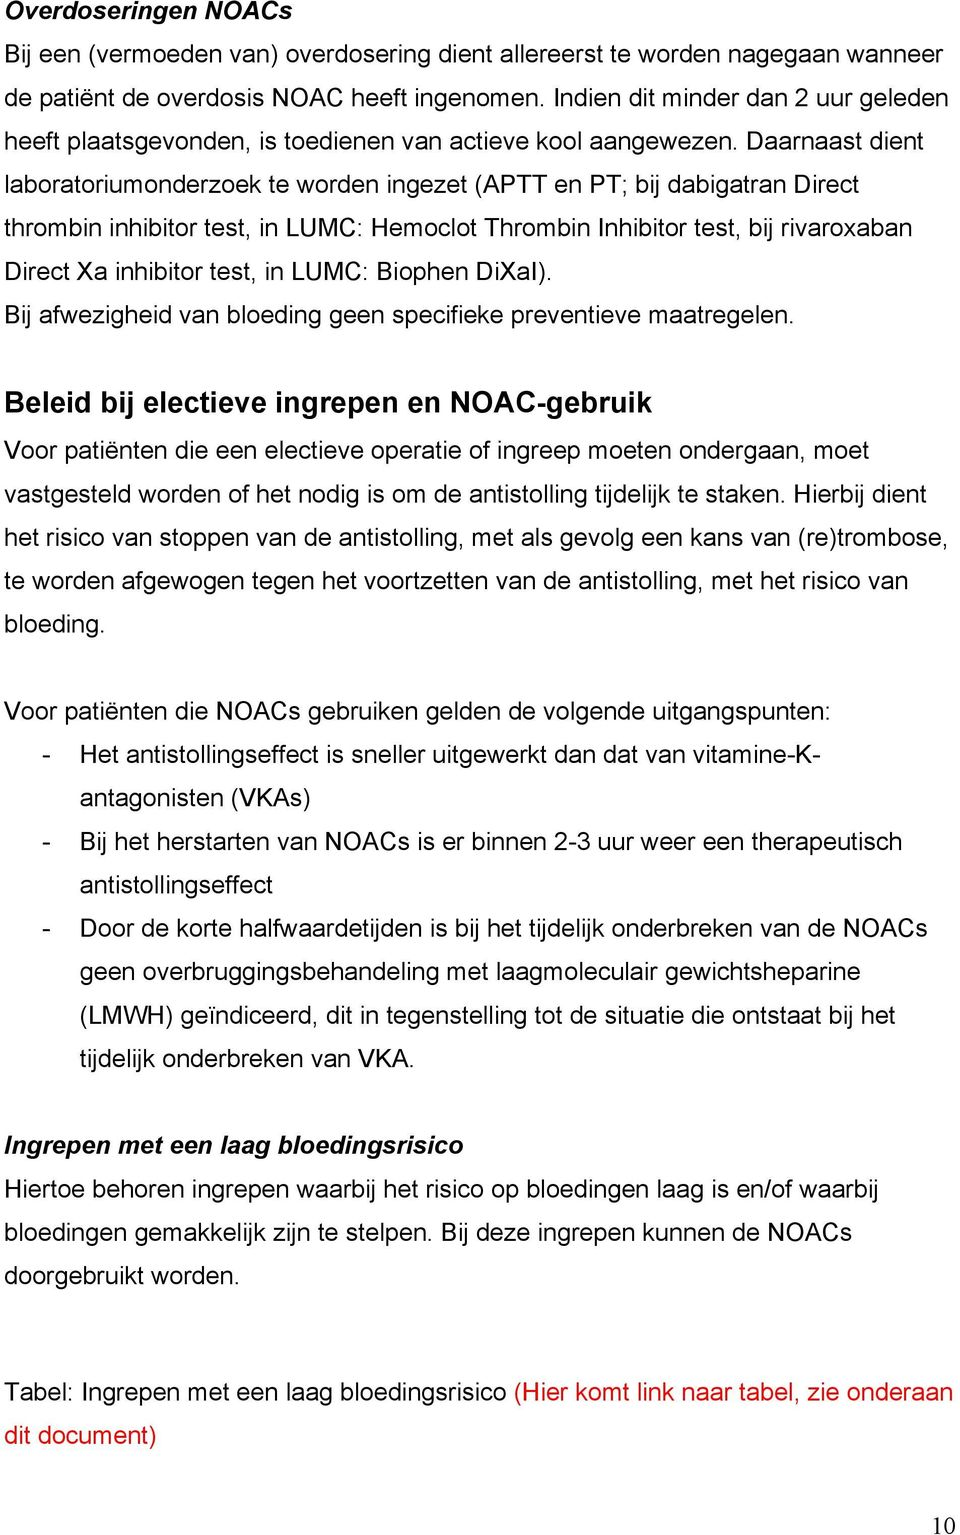 Daarnaast dient laboratoriumonderzoek te worden ingezet (APTT en PT; bij dabigatran Direct thrombin inhibitor test, in LUMC: Hemoclot Thrombin Inhibitor test, bij rivaroxaban Direct Xa inhibitor